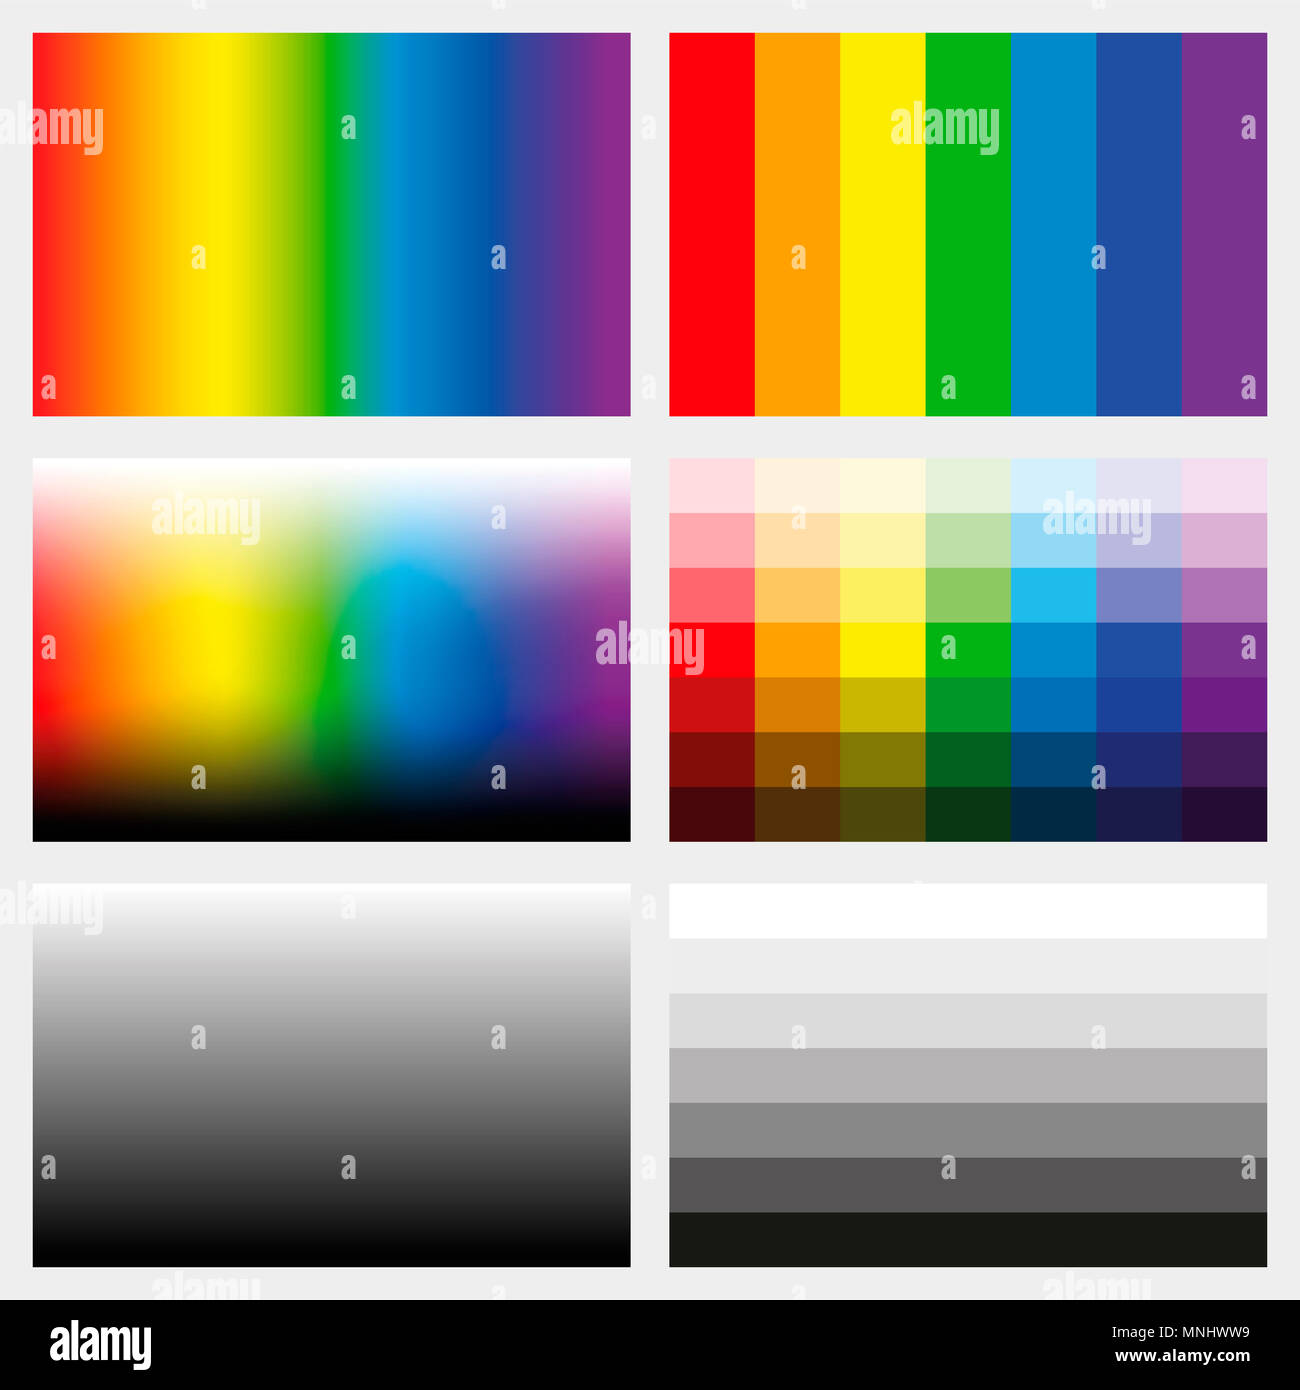 Shade tabs. Set of color gradients, grayscales and saturation spectrums in different gradations from light to dark - work tool for graphic design. - Stock Image